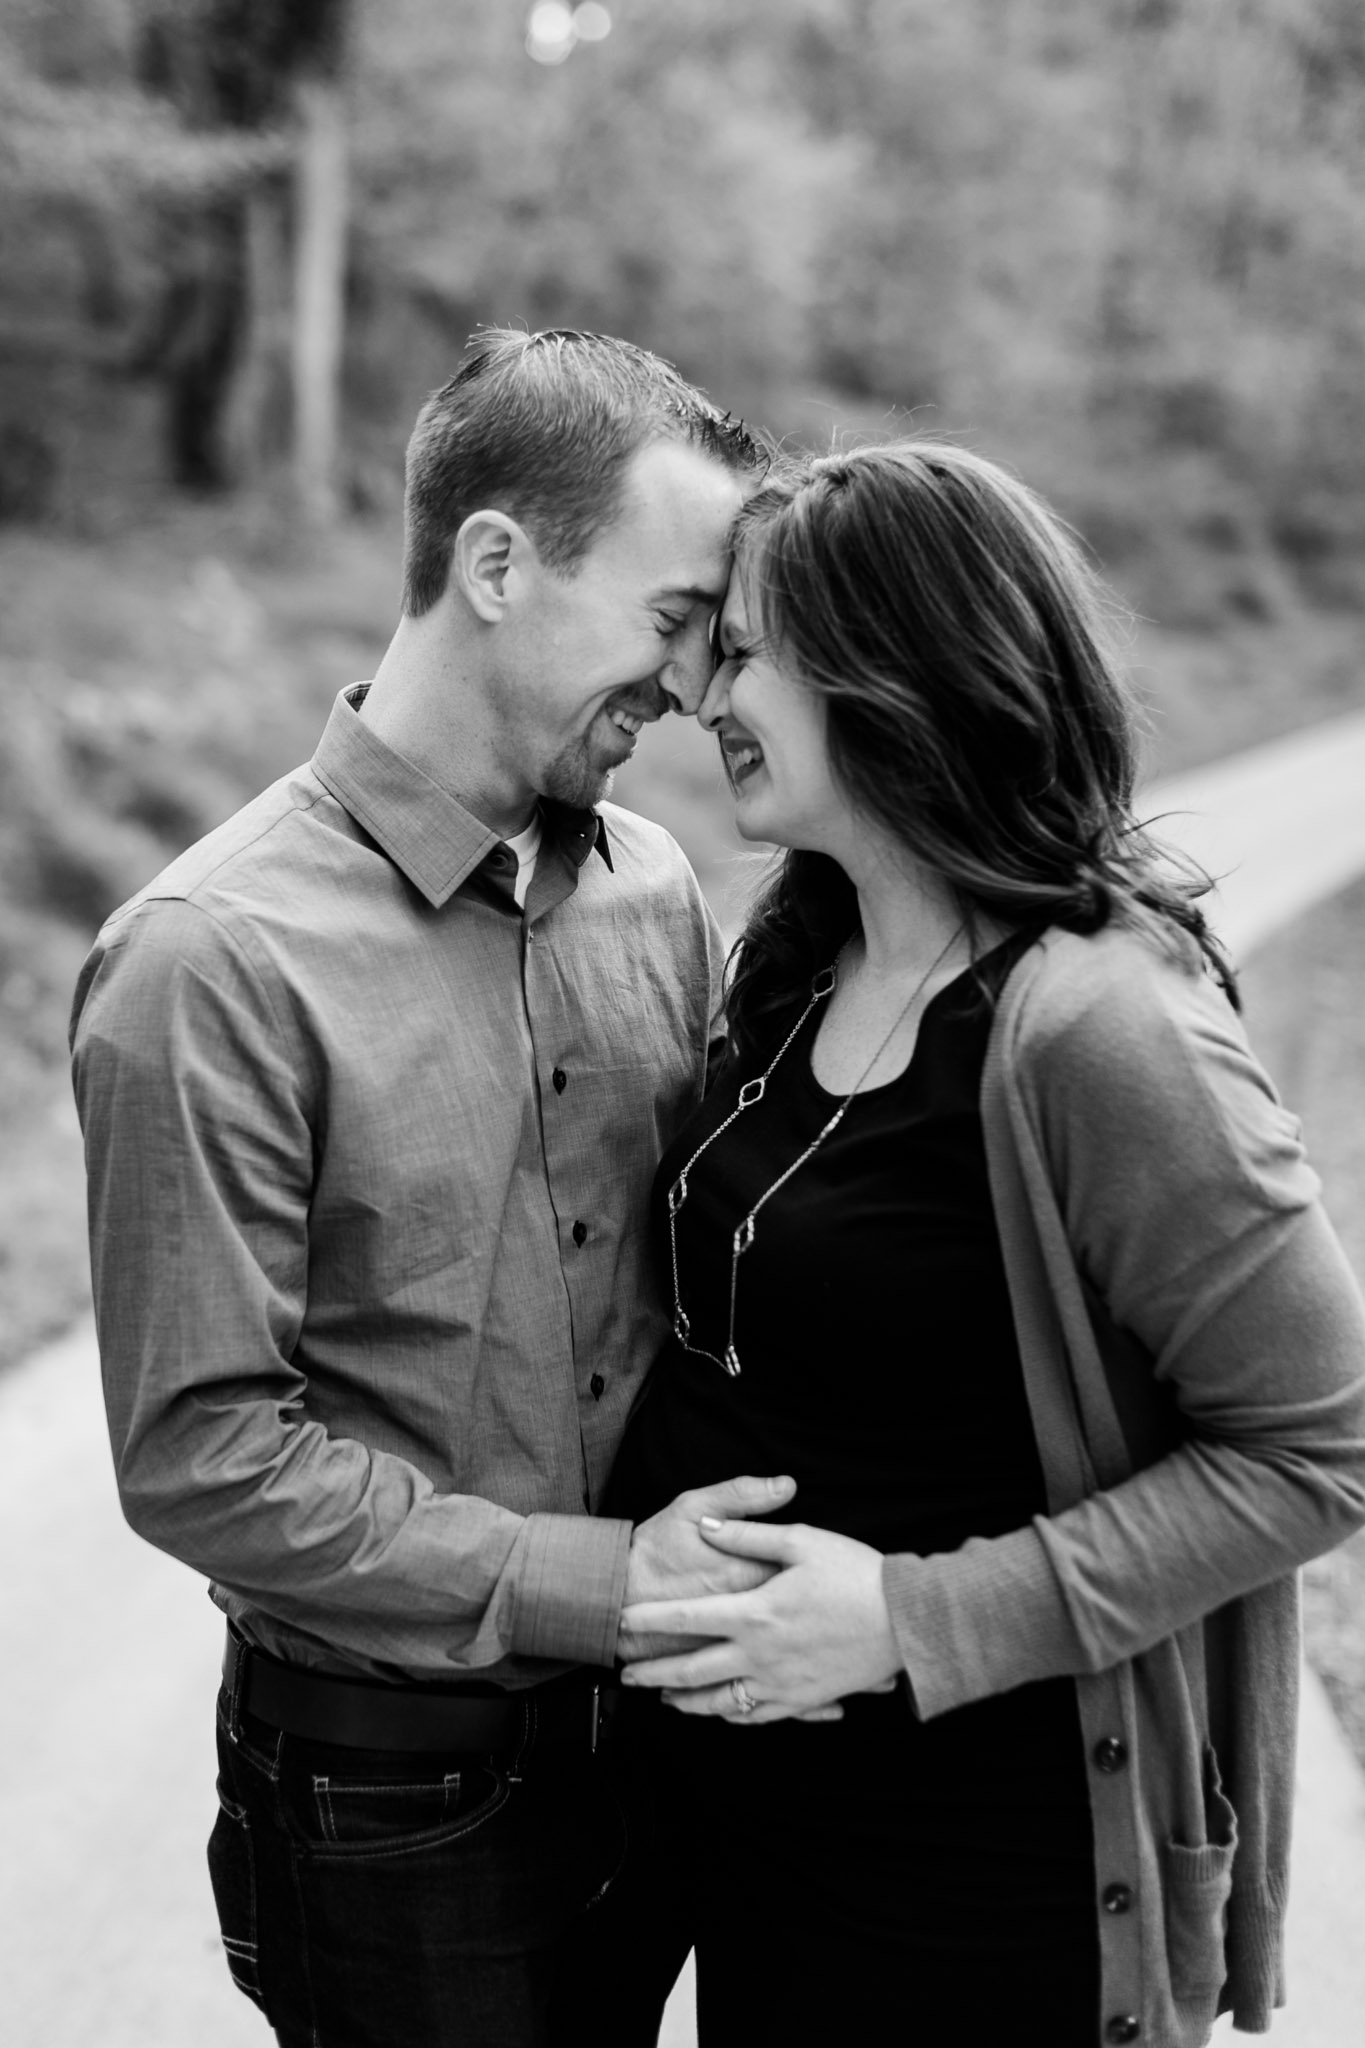 Black and white maternity photo | Hillsborough Maternity Photographer | By G. Lin Photography